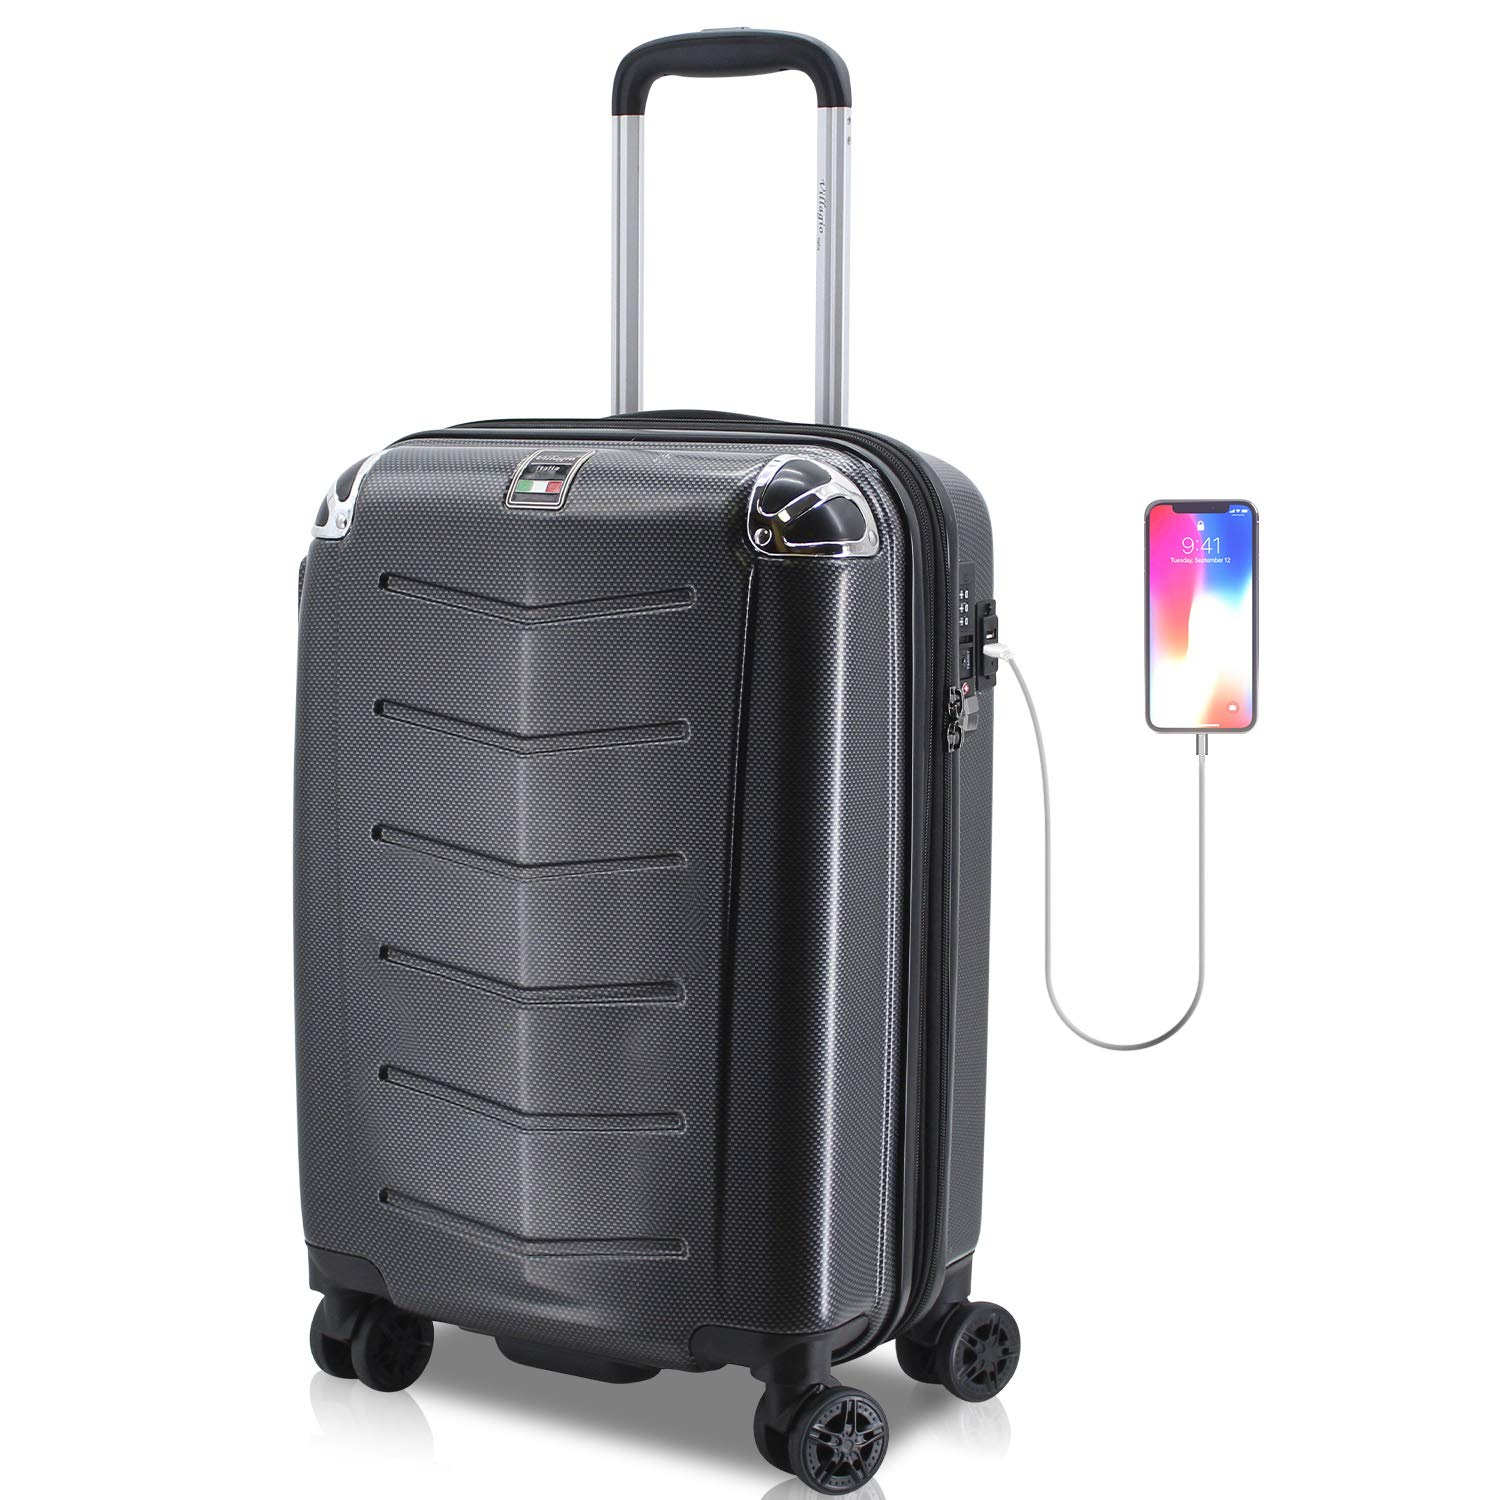 Amazon.com | Villagio Hardshell Luggage 21 Inch - USB Port Polycarbonate 8 Wheel Spinner with Slash Proof Zipper and TSA lock (21, Black) | Luggage Sets